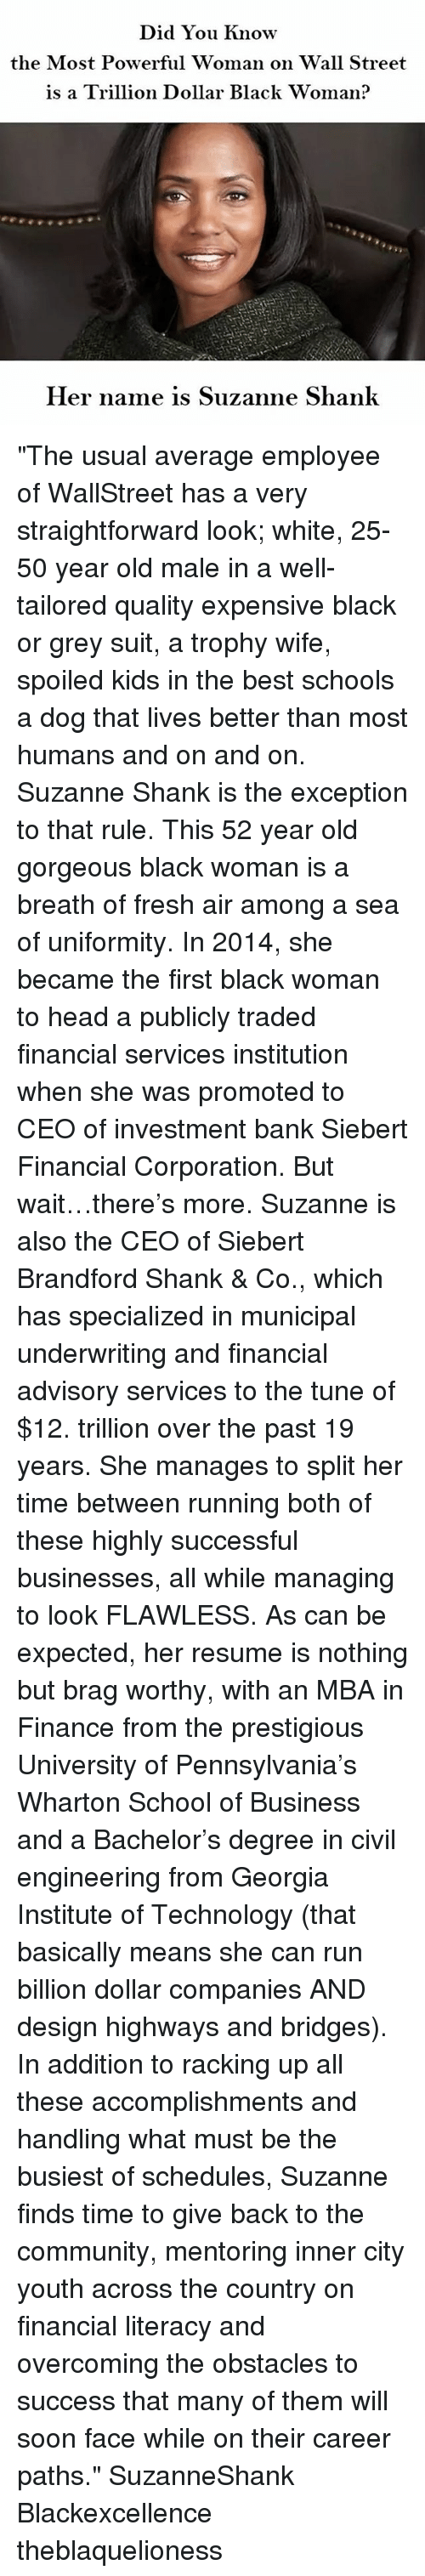 "Community, Finance, and Fresh: Did You know  the Most Powerful Woman on Wall Street  is a Trillion Dollar Black woman?  Her name is Suzanne Shank ""The usual average employee of WallStreet has a very straightforward look; white, 25-50 year old male in a well-tailored quality expensive black or grey suit, a trophy wife, spoiled kids in the best schools a dog that lives better than most humans and on and on. Suzanne Shank is the exception to that rule. This 52 year old gorgeous black woman is a breath of fresh air among a sea of uniformity. In 2014, she became the first black woman to head a publicly traded financial services institution when she was promoted to CEO of investment bank Siebert Financial Corporation. But wait…there's more. Suzanne is also the CEO of Siebert Brandford Shank & Co., which has specialized in municipal underwriting and financial advisory services to the tune of $12. trillion over the past 19 years. She manages to split her time between running both of these highly successful businesses, all while managing to look FLAWLESS. As can be expected, her resume is nothing but brag worthy, with an MBA in Finance from the prestigious University of Pennsylvania's Wharton School of Business and a Bachelor's degree in civil engineering from Georgia Institute of Technology (that basically means she can run billion dollar companies AND design highways and bridges). In addition to racking up all these accomplishments and handling what must be the busiest of schedules, Suzanne finds time to give back to the community, mentoring inner city youth across the country on financial literacy and overcoming the obstacles to success that many of them will soon face while on their career paths."" SuzanneShank Blackexcellence theblaquelioness"